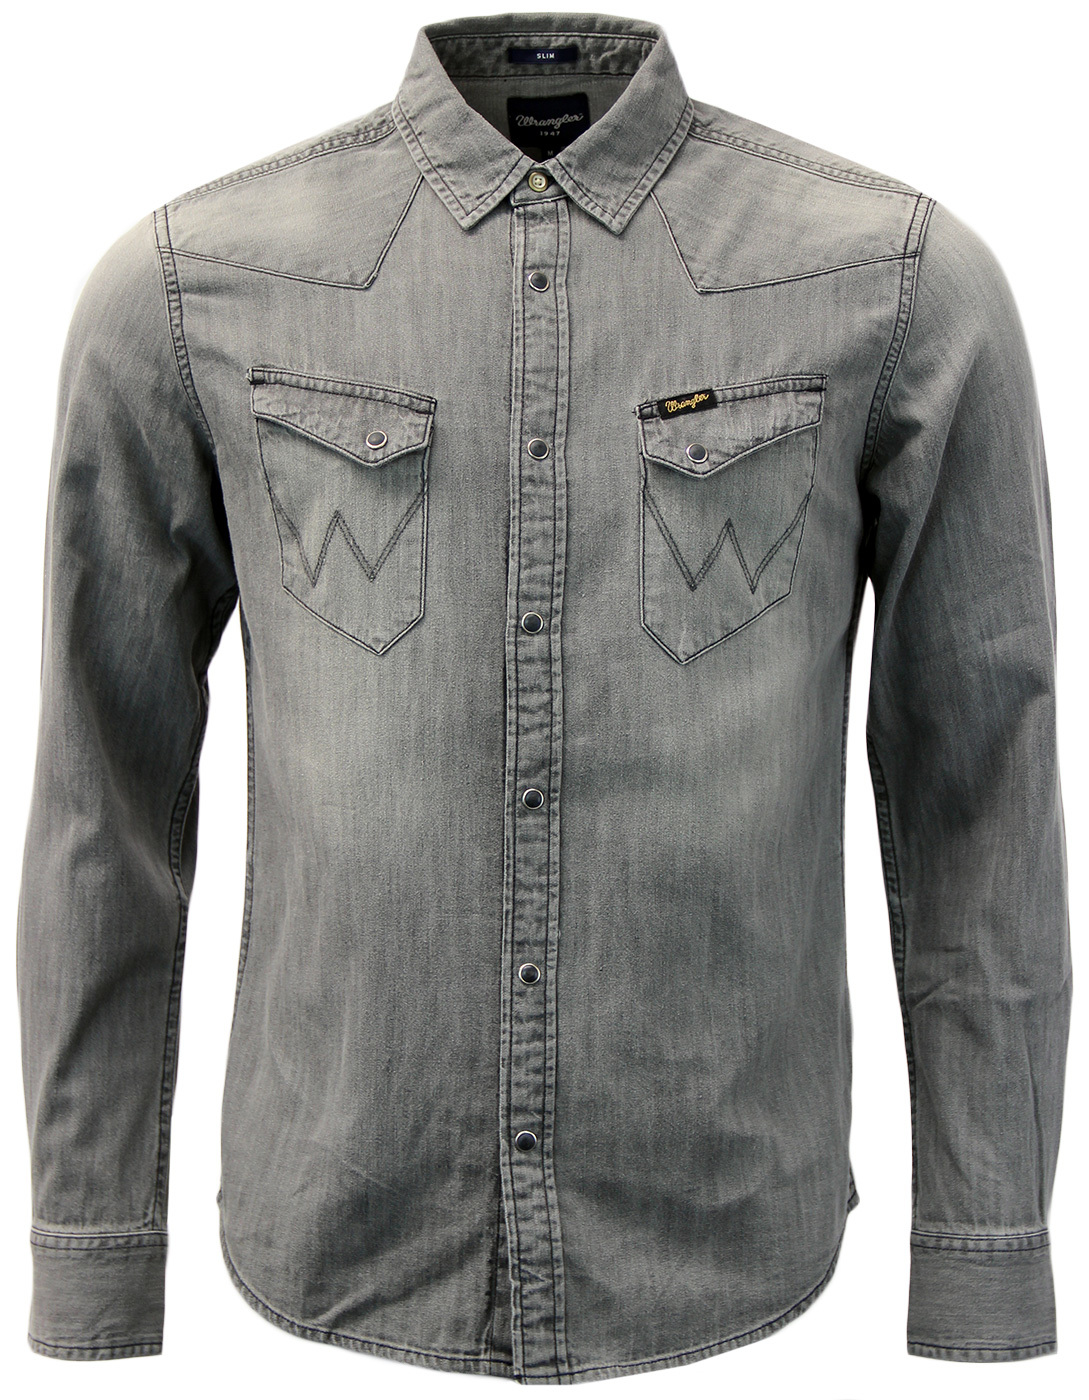 ed13527d16 WRANGLER City Western 70s Indie Mens Denim Shirt in Wash Out Grey